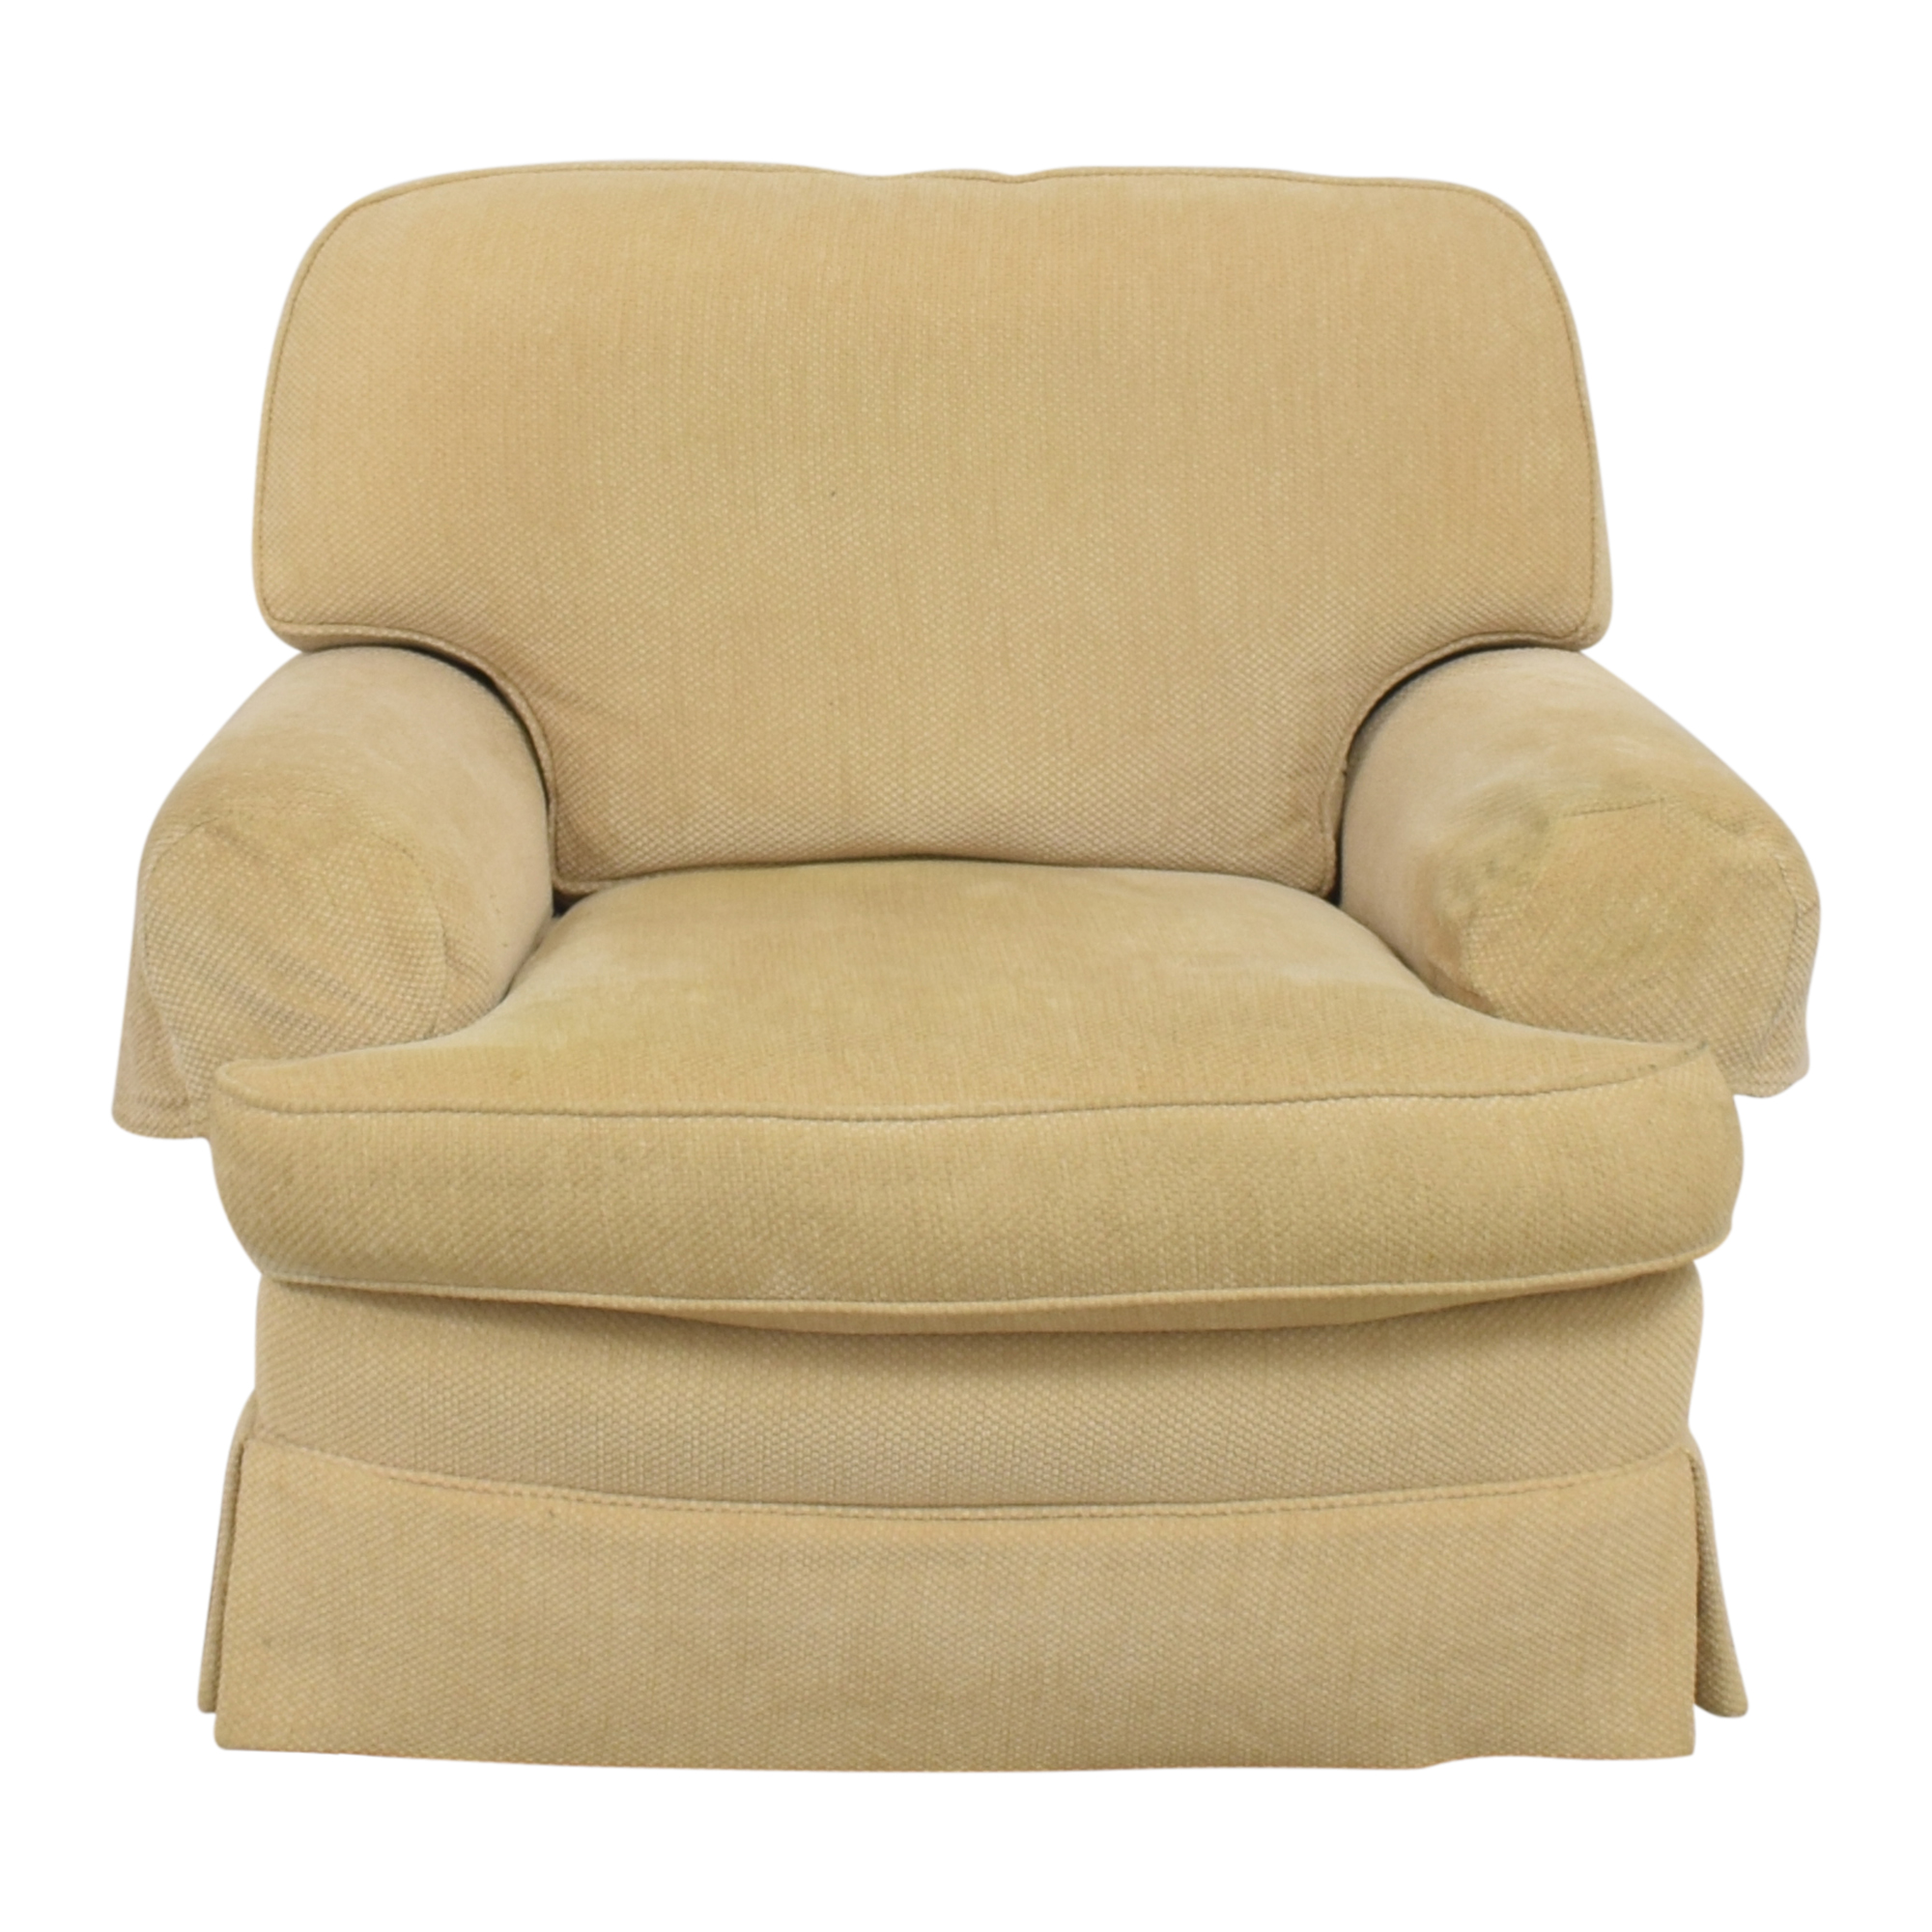 Ralph Lauren Home Chair with Ottoman / Accent Chairs